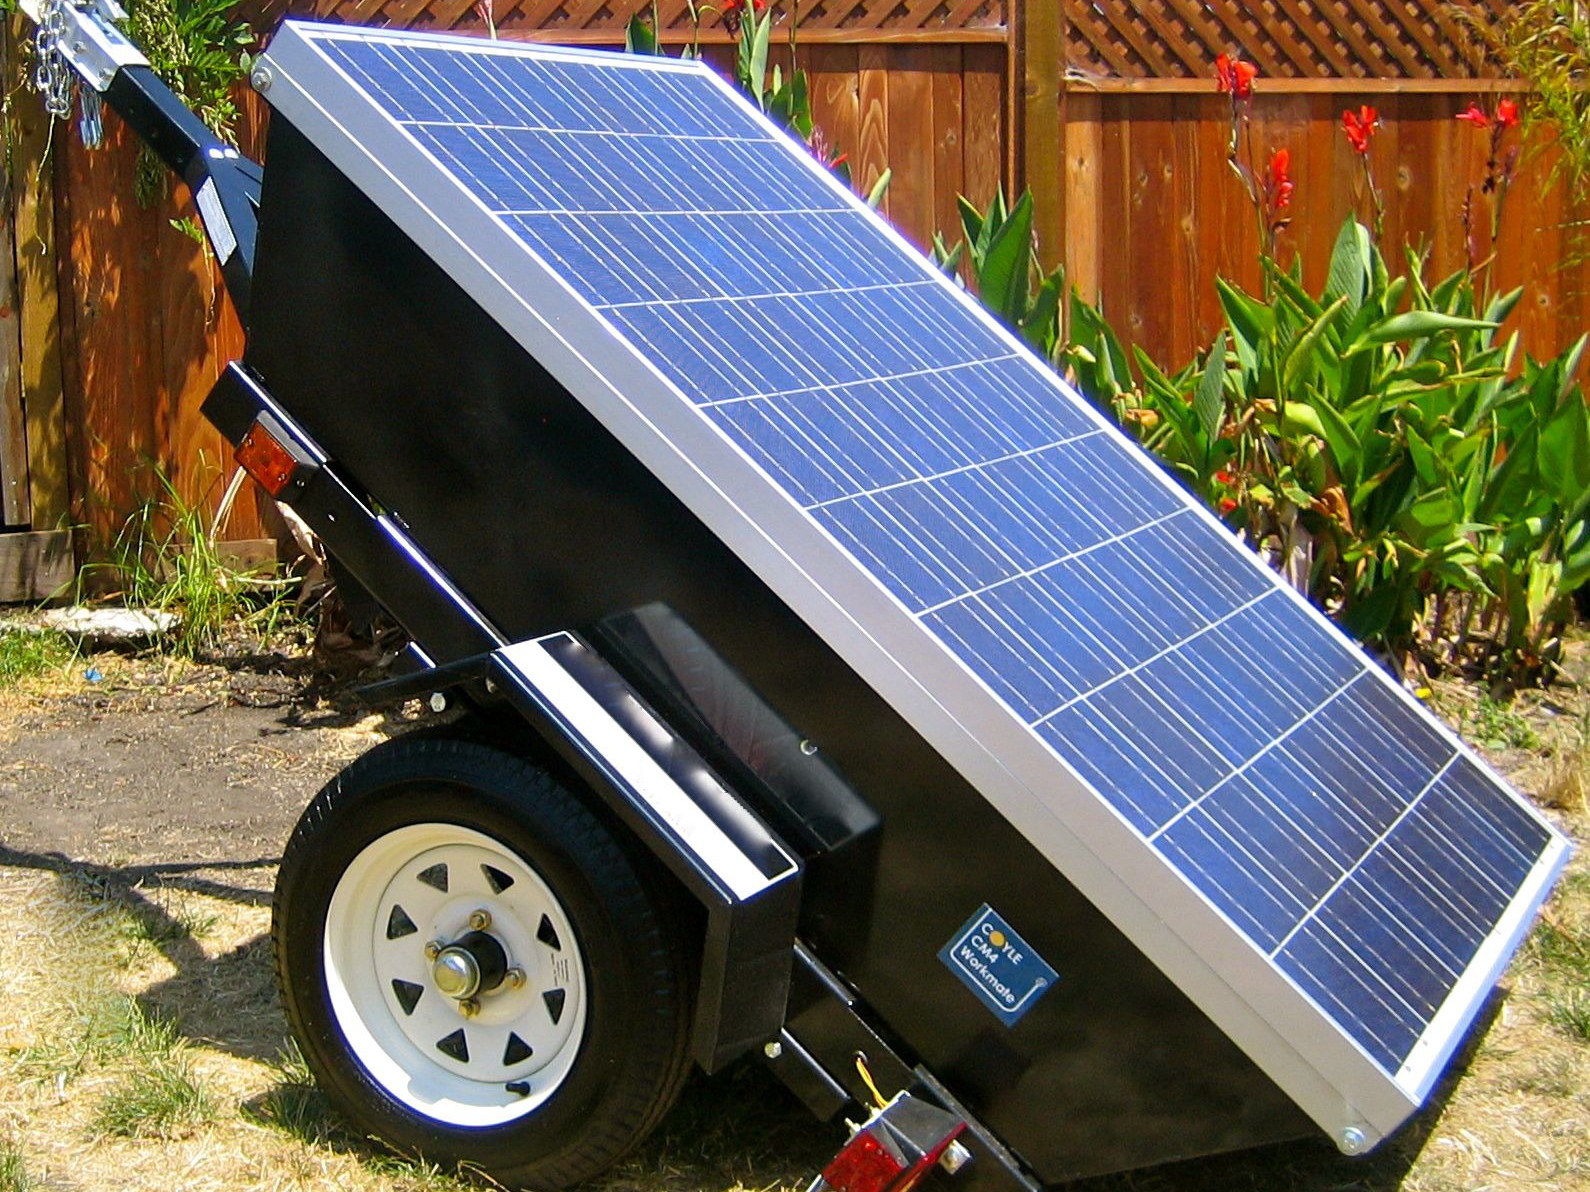 Photovoltaic System Wikipedia Solarpvdiagramhowitworksjpg Profile Picture Of A Mobile Solar Powered Generator